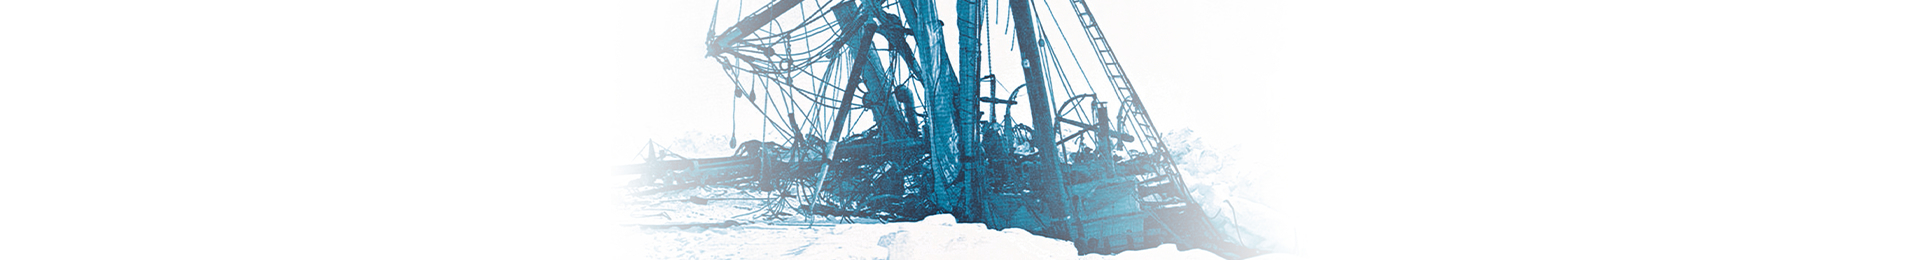 Shackleton and his Stowaway banner image